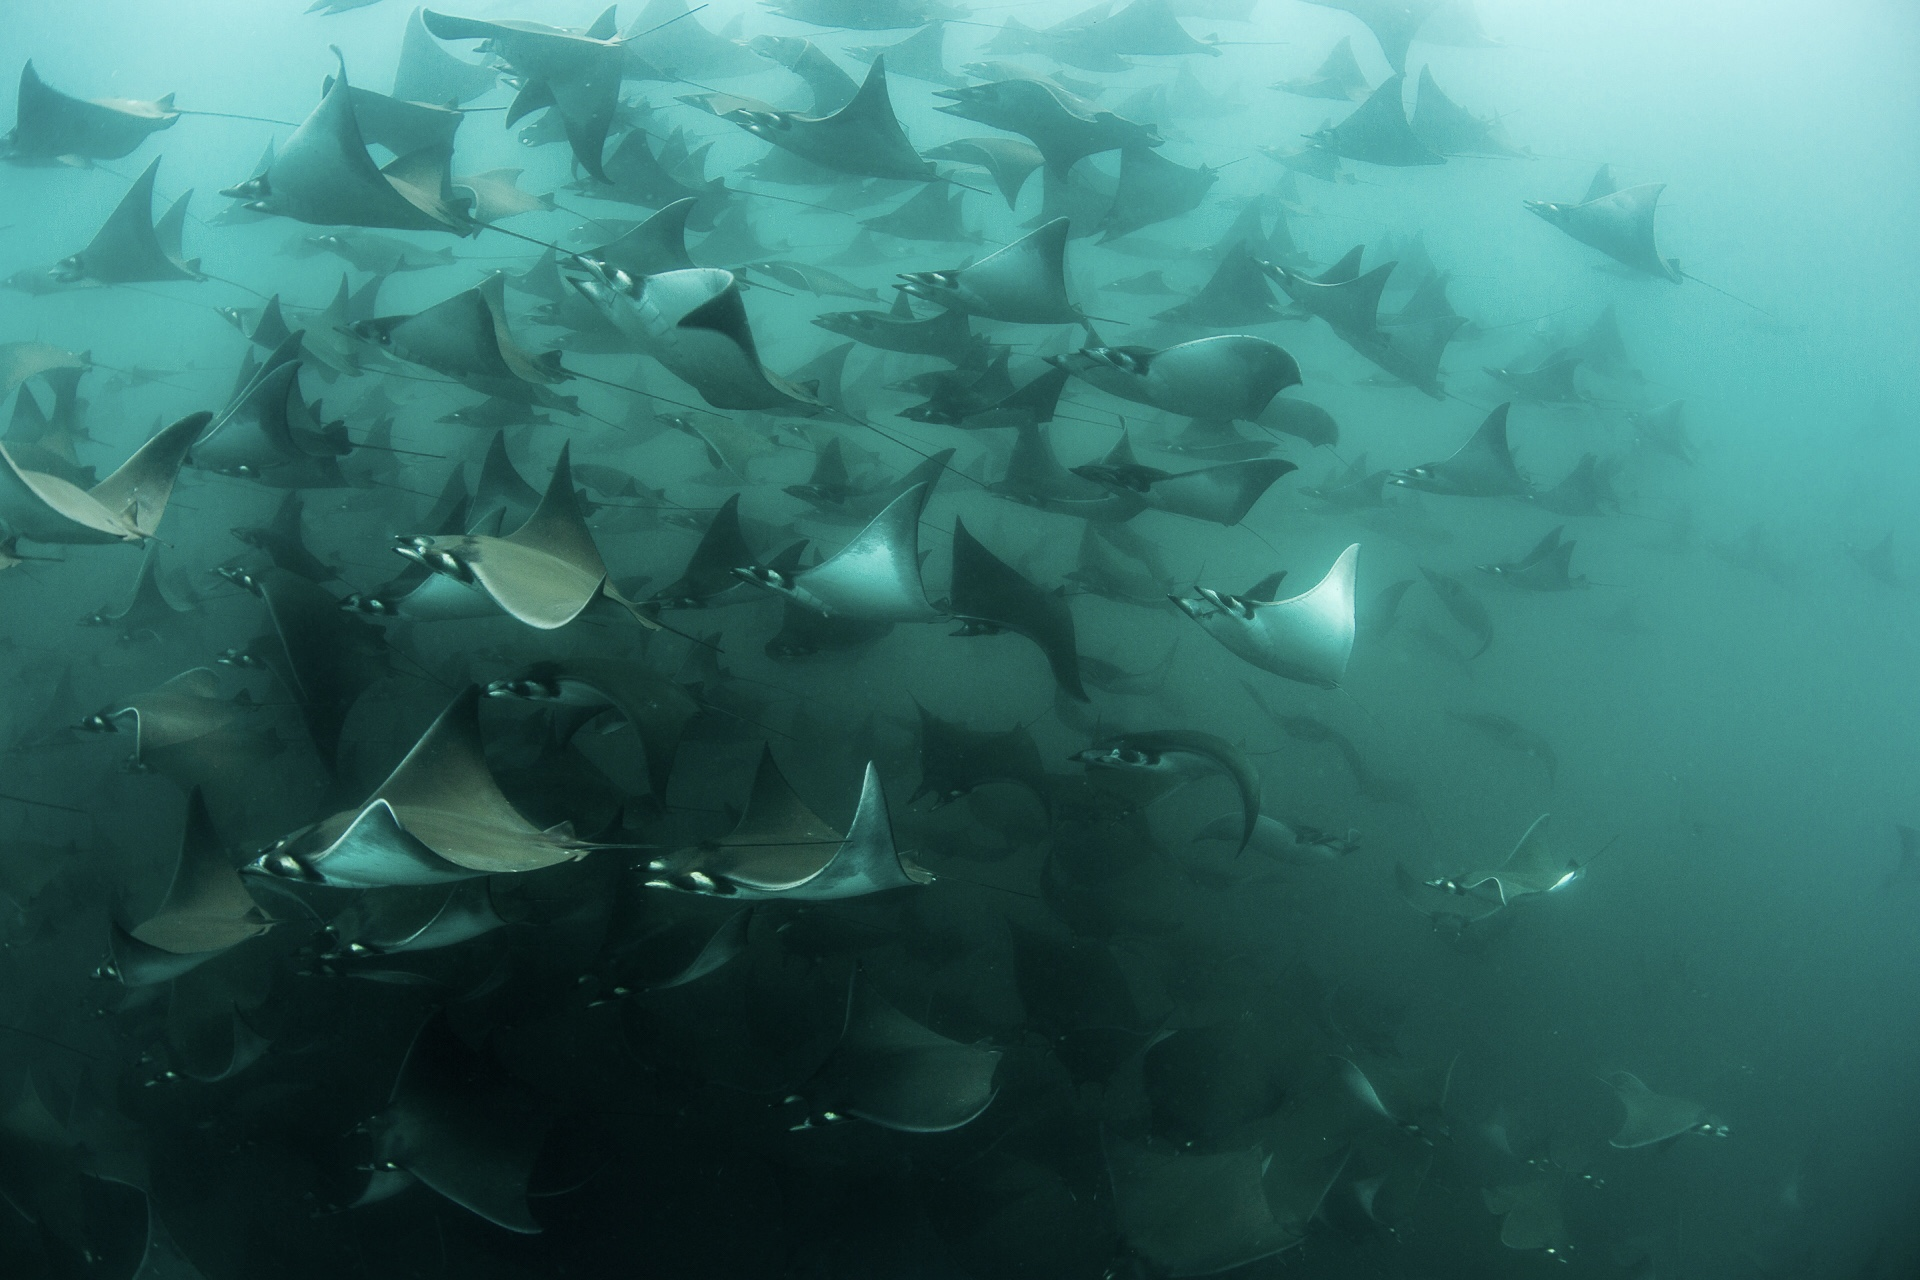 Snorkeling with Mobula ray school cabo san lucas